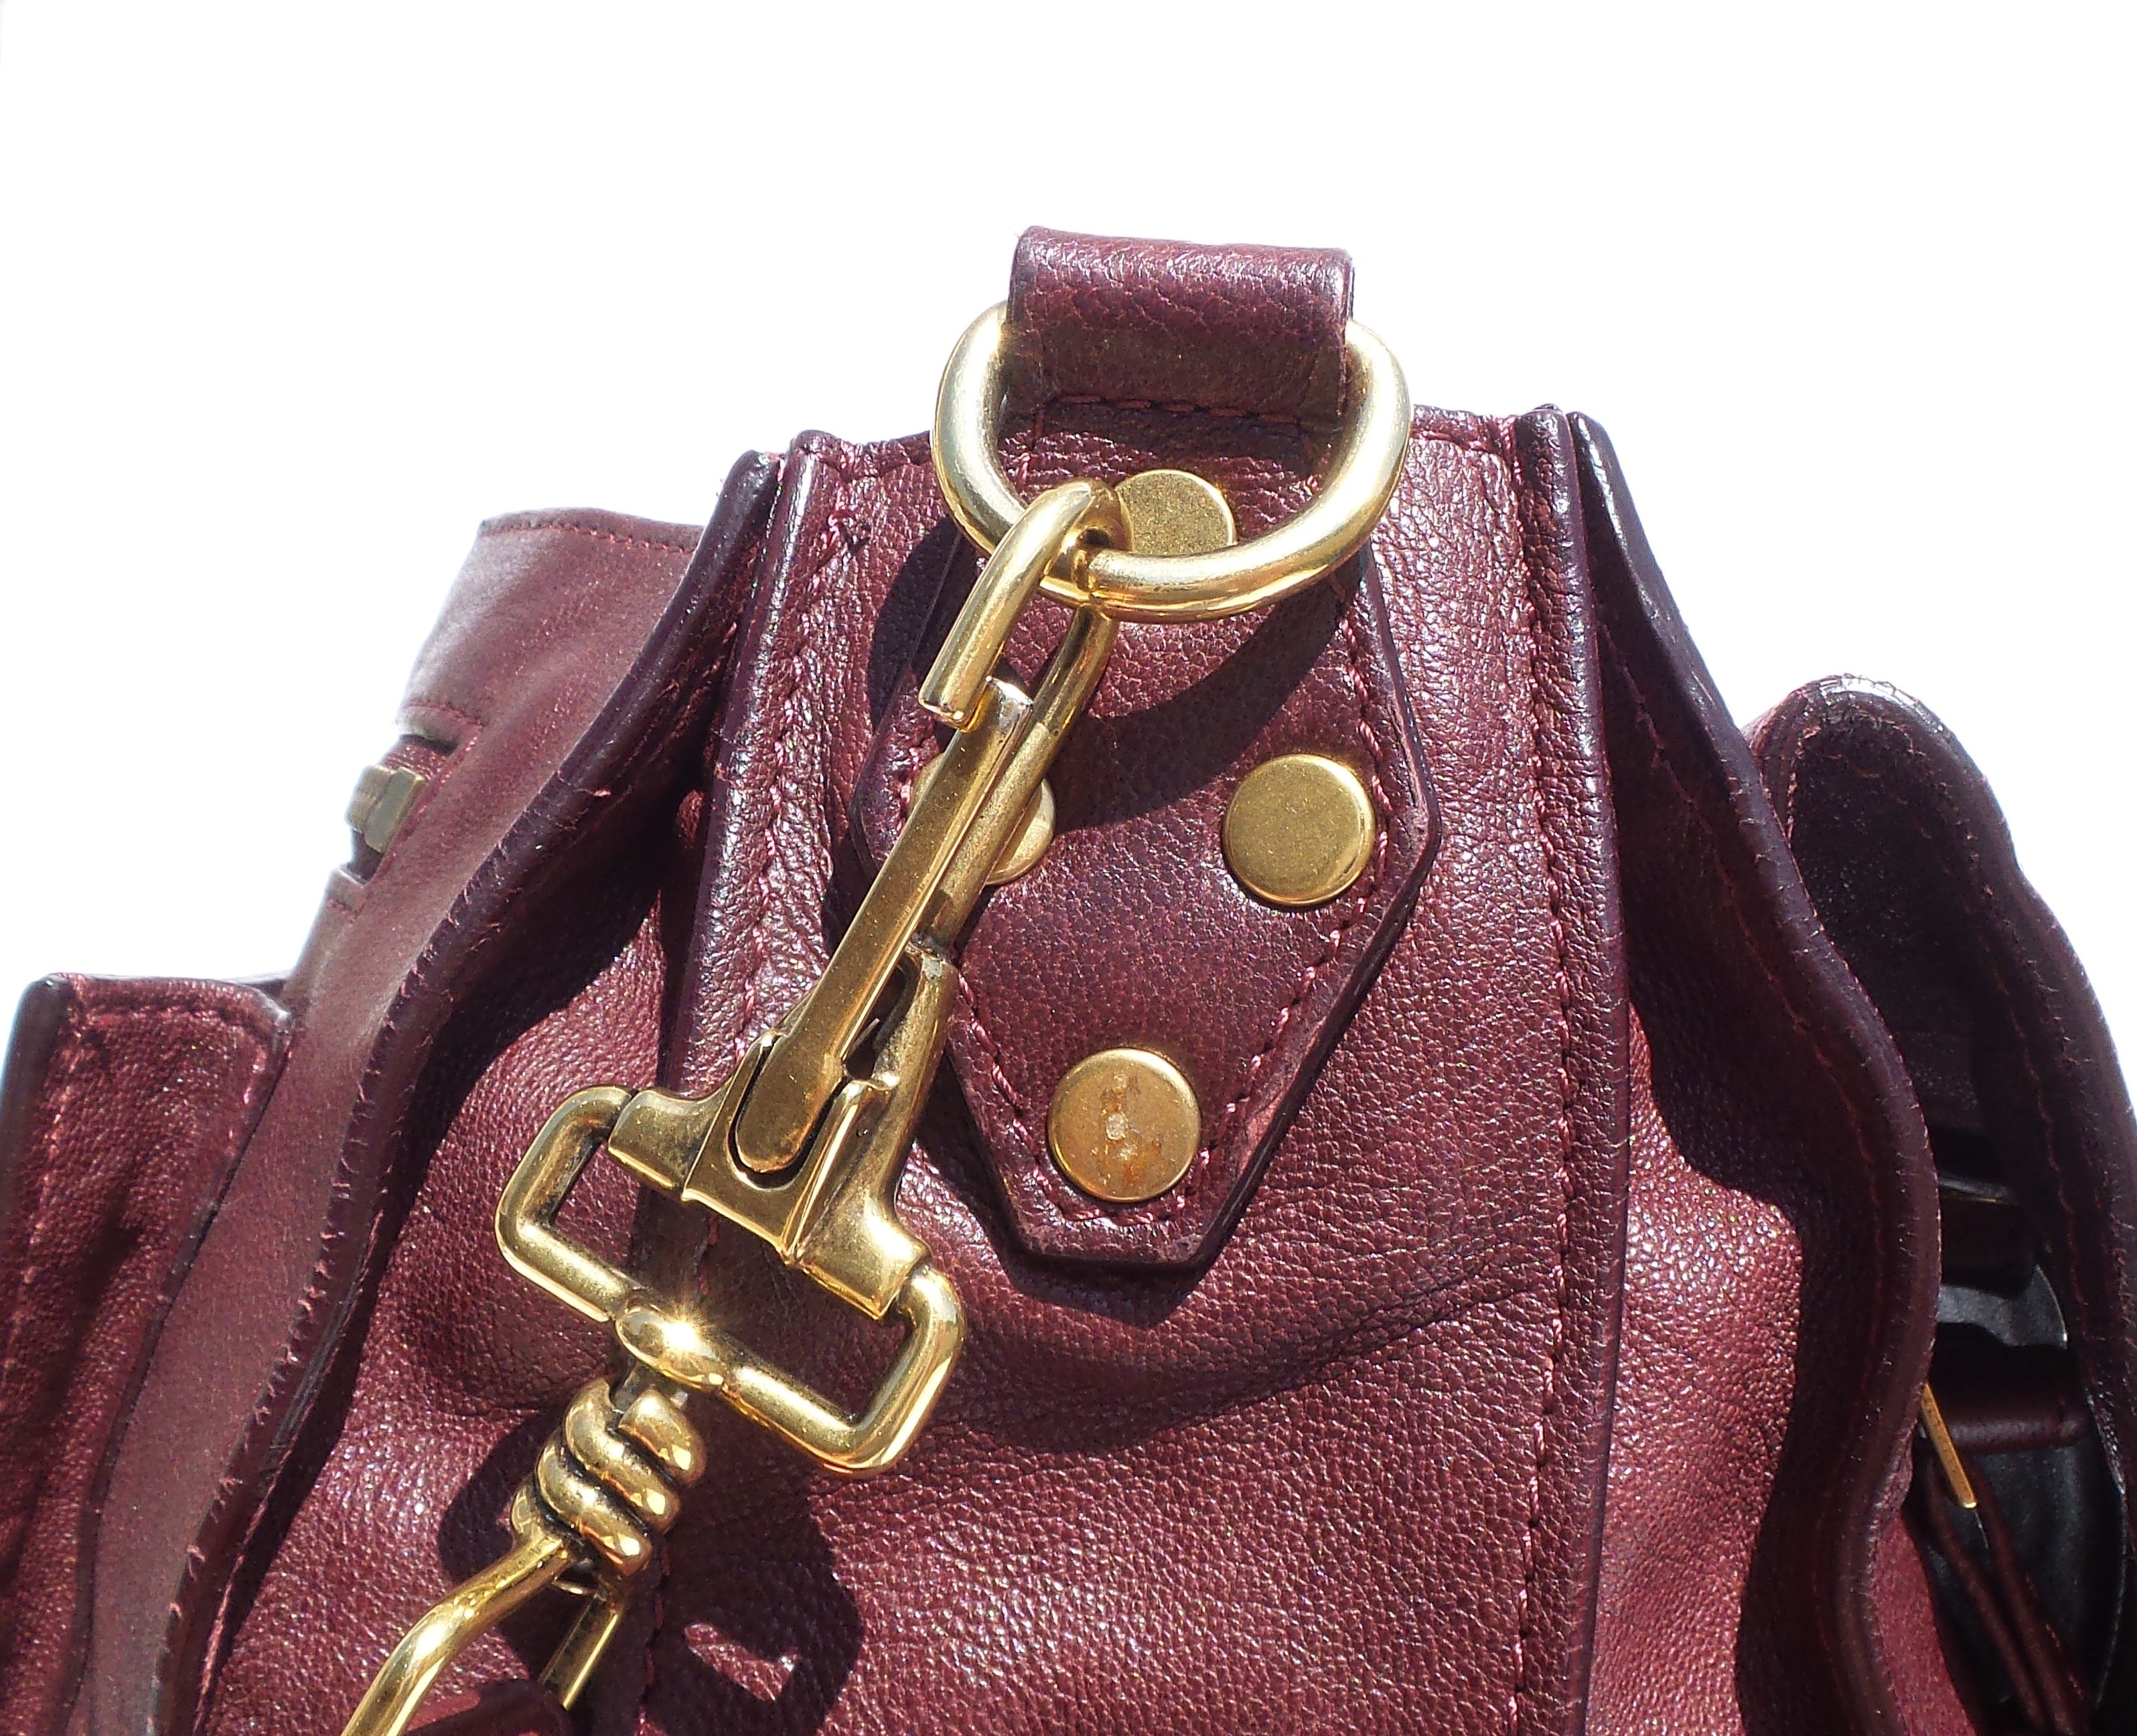 PROENZA SCHOULER Burgundy Wine Leather Gold HW Large PS1 Satchel Messenger Bag